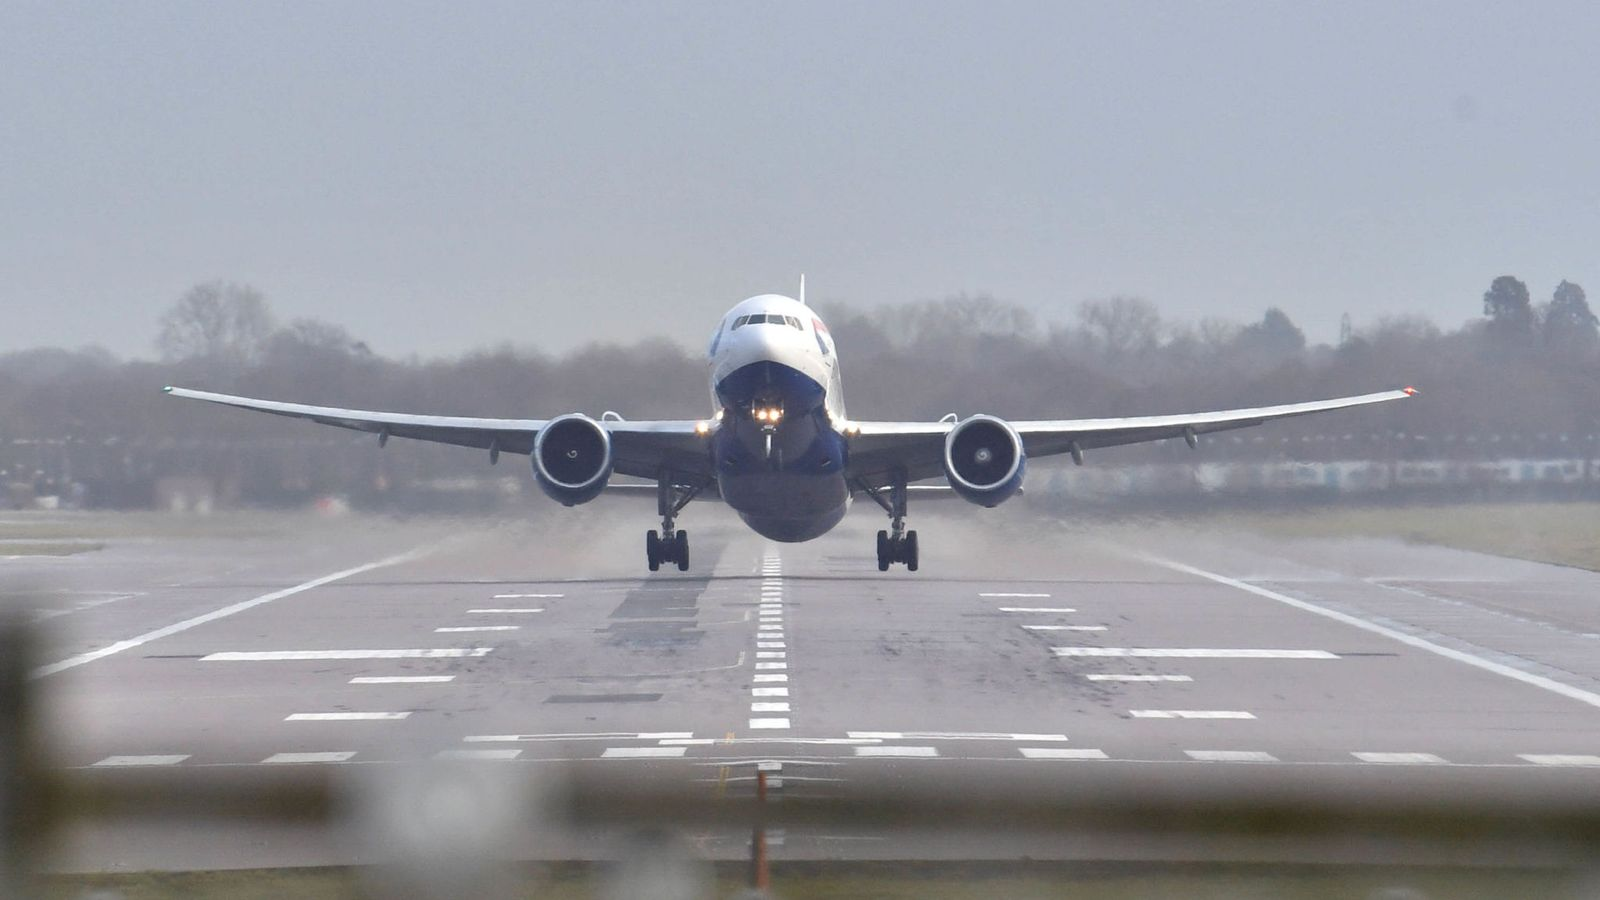 London airport Gatwick was temporary closed because of suspicious drones